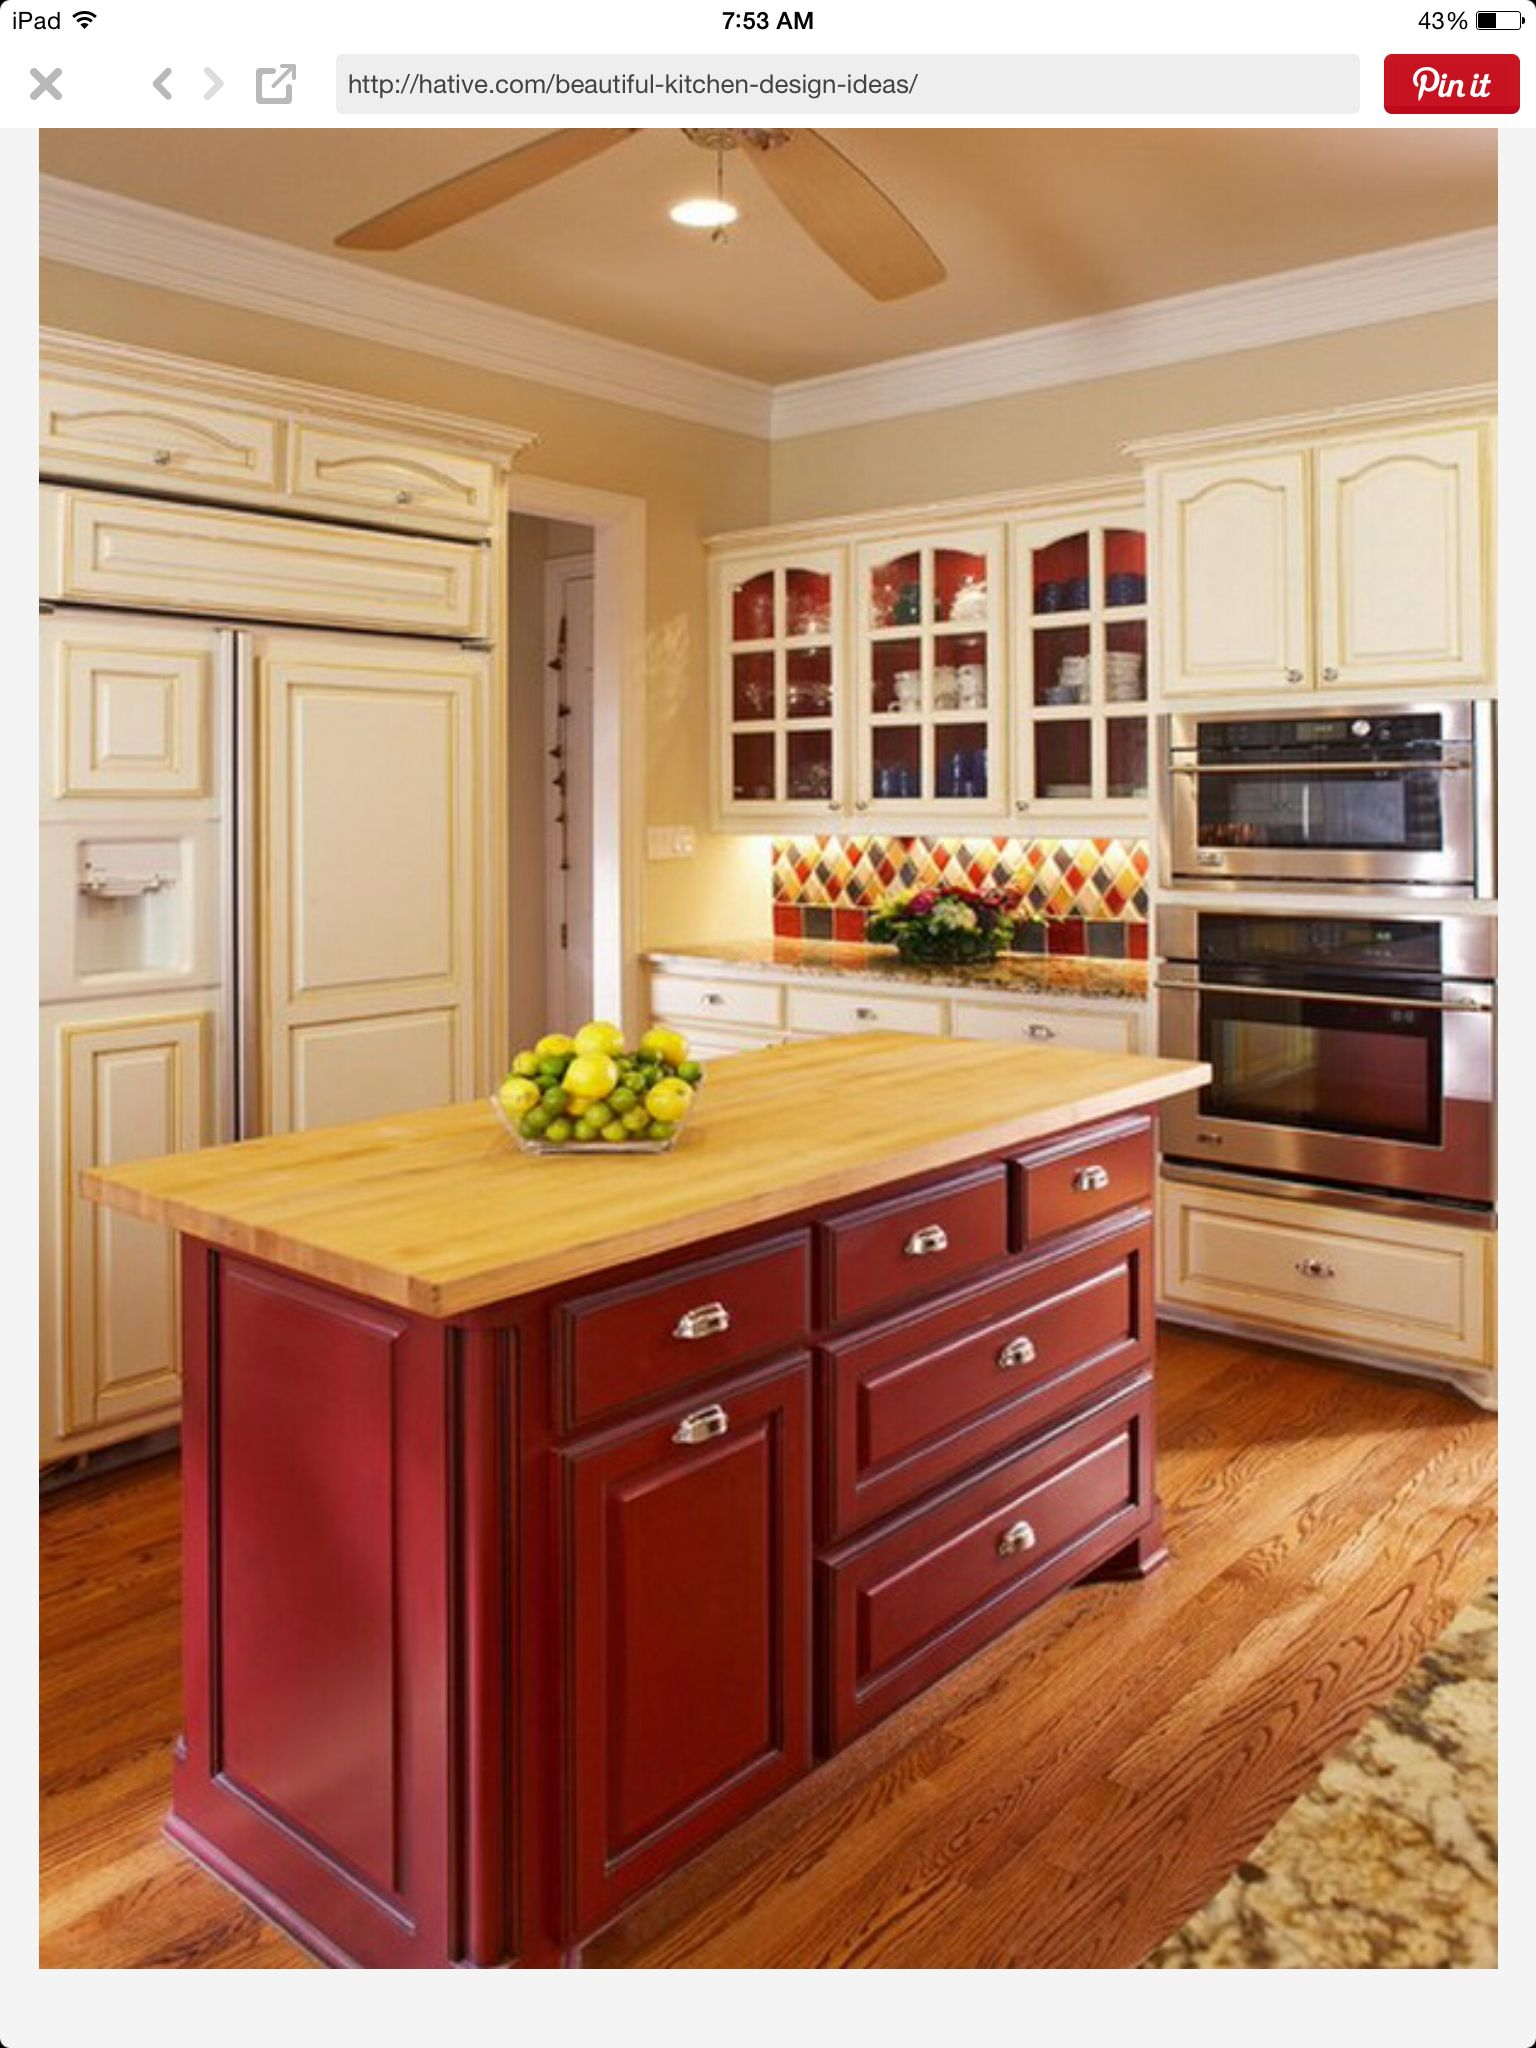 This Is Exactly How I Want My Kitchen Red Kitchen Cabinets Barn Red Kitchen Red Kitchen Island